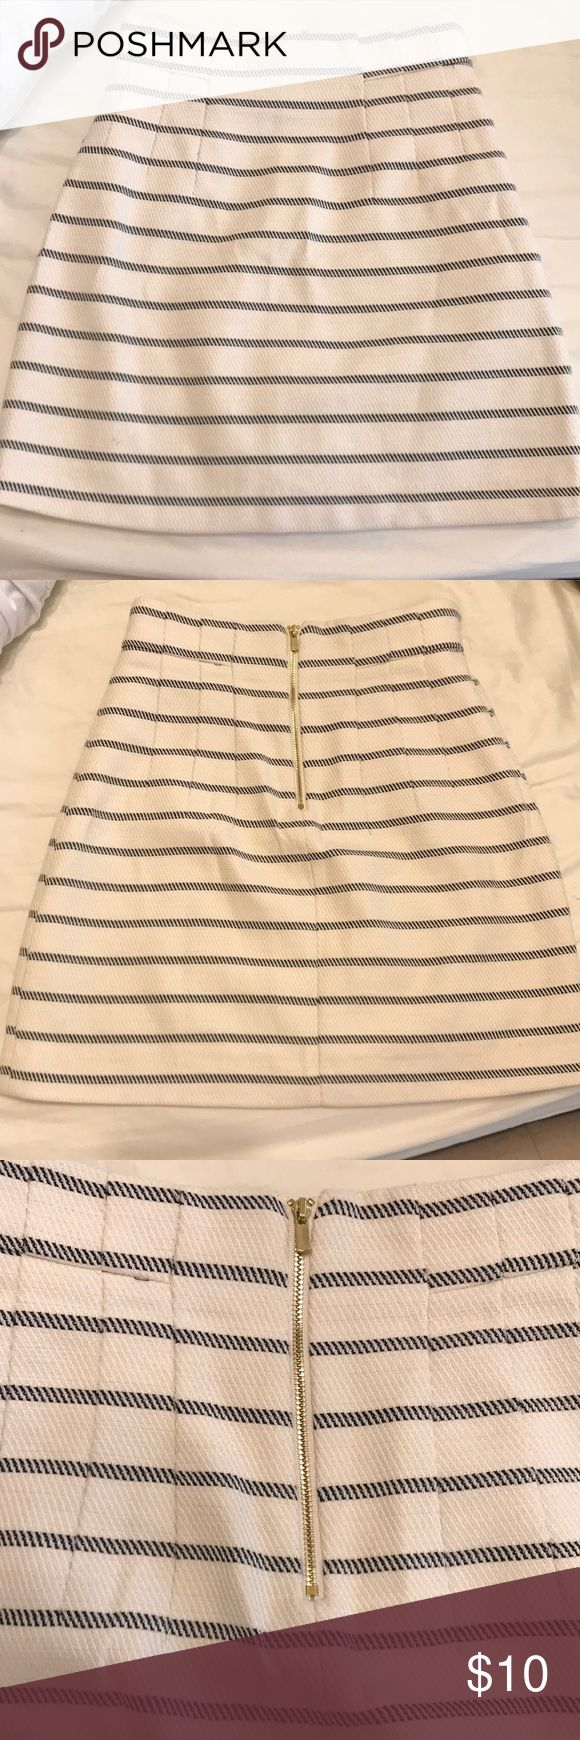 H&M Striped Creme and Navy Career Skirt H&M creme knit career skirt with navy stripes. Lined on the inside. Falls mid thigh. Pleated at waist. Back gold zipper detail. H&M Skirts Mini